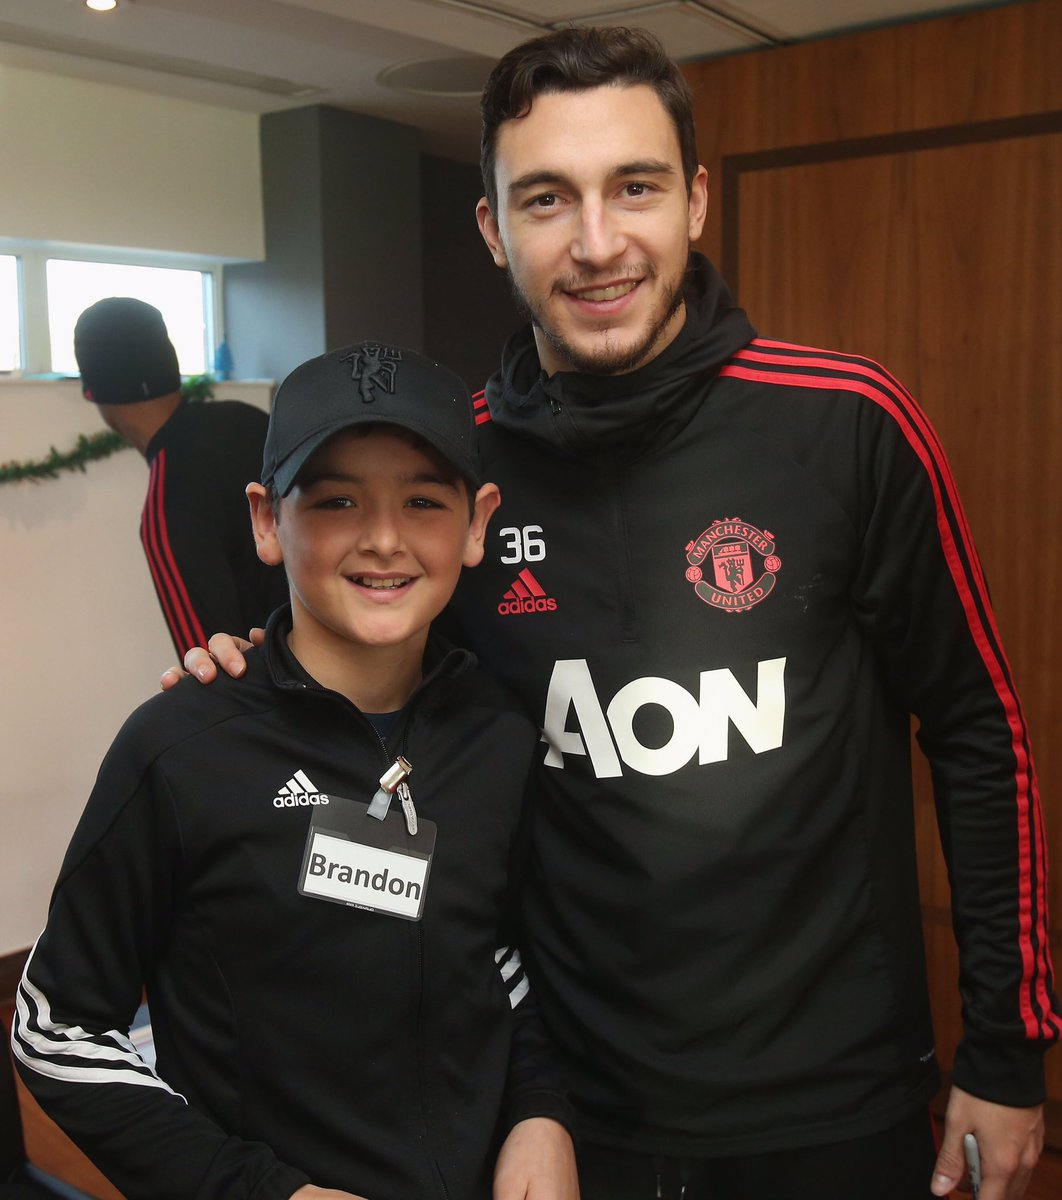 Great afternoon at #MUDreamDay! Nice to meet all this lovely fans ❤ @ManUtd @MU_Foundation